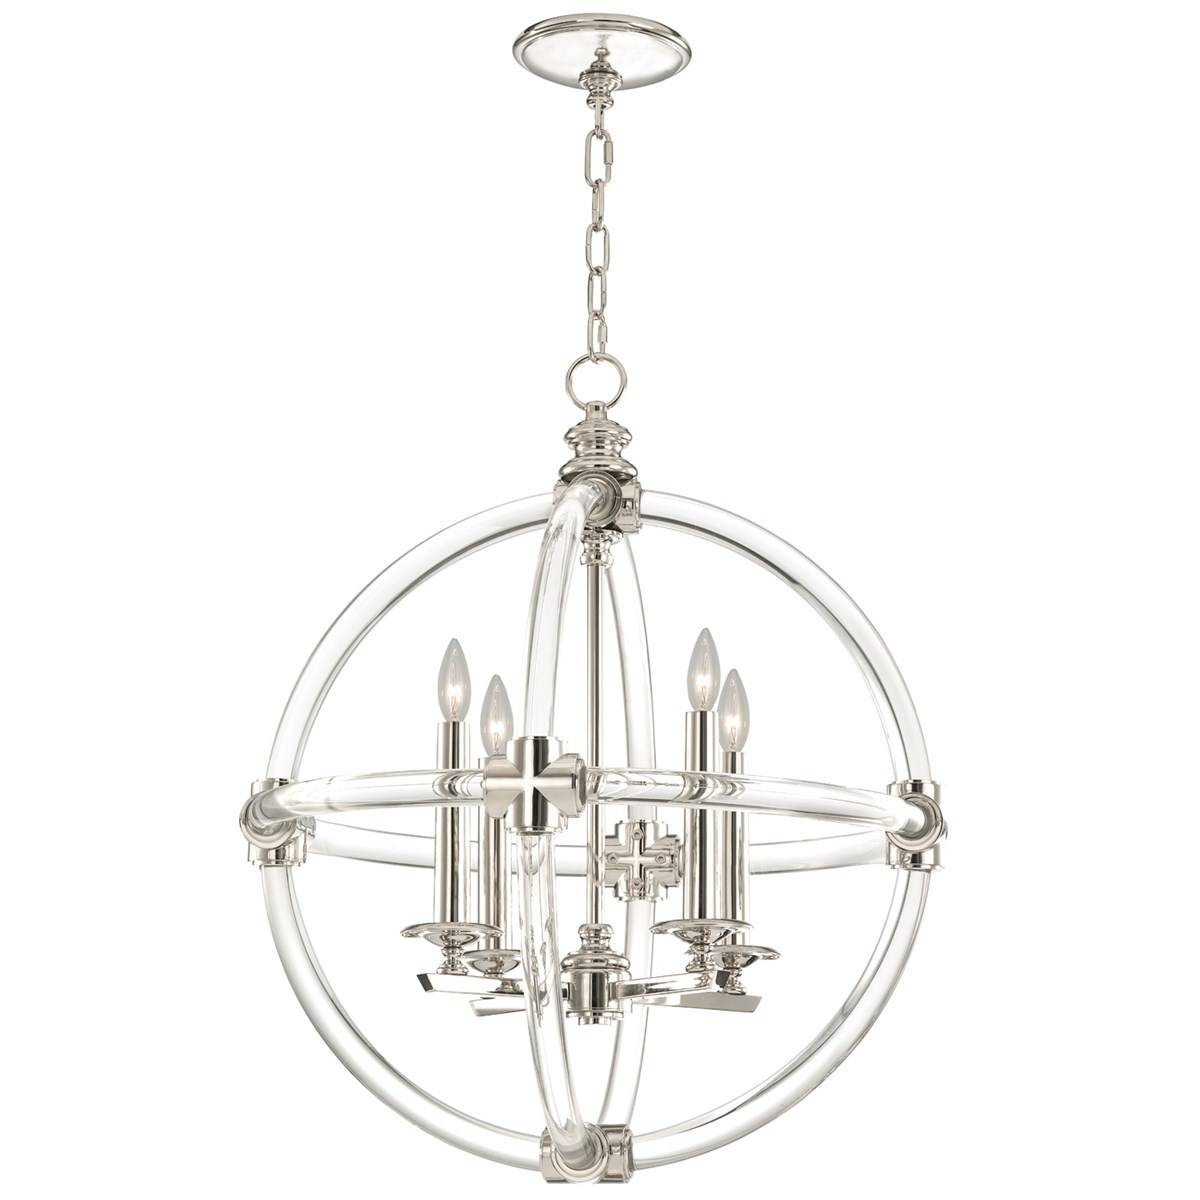 Fine Art Grosvenor Square Pendant, Pendant Fixture | Neenas Lighting within Grosvenor Lights Pendants (Image 6 of 15)